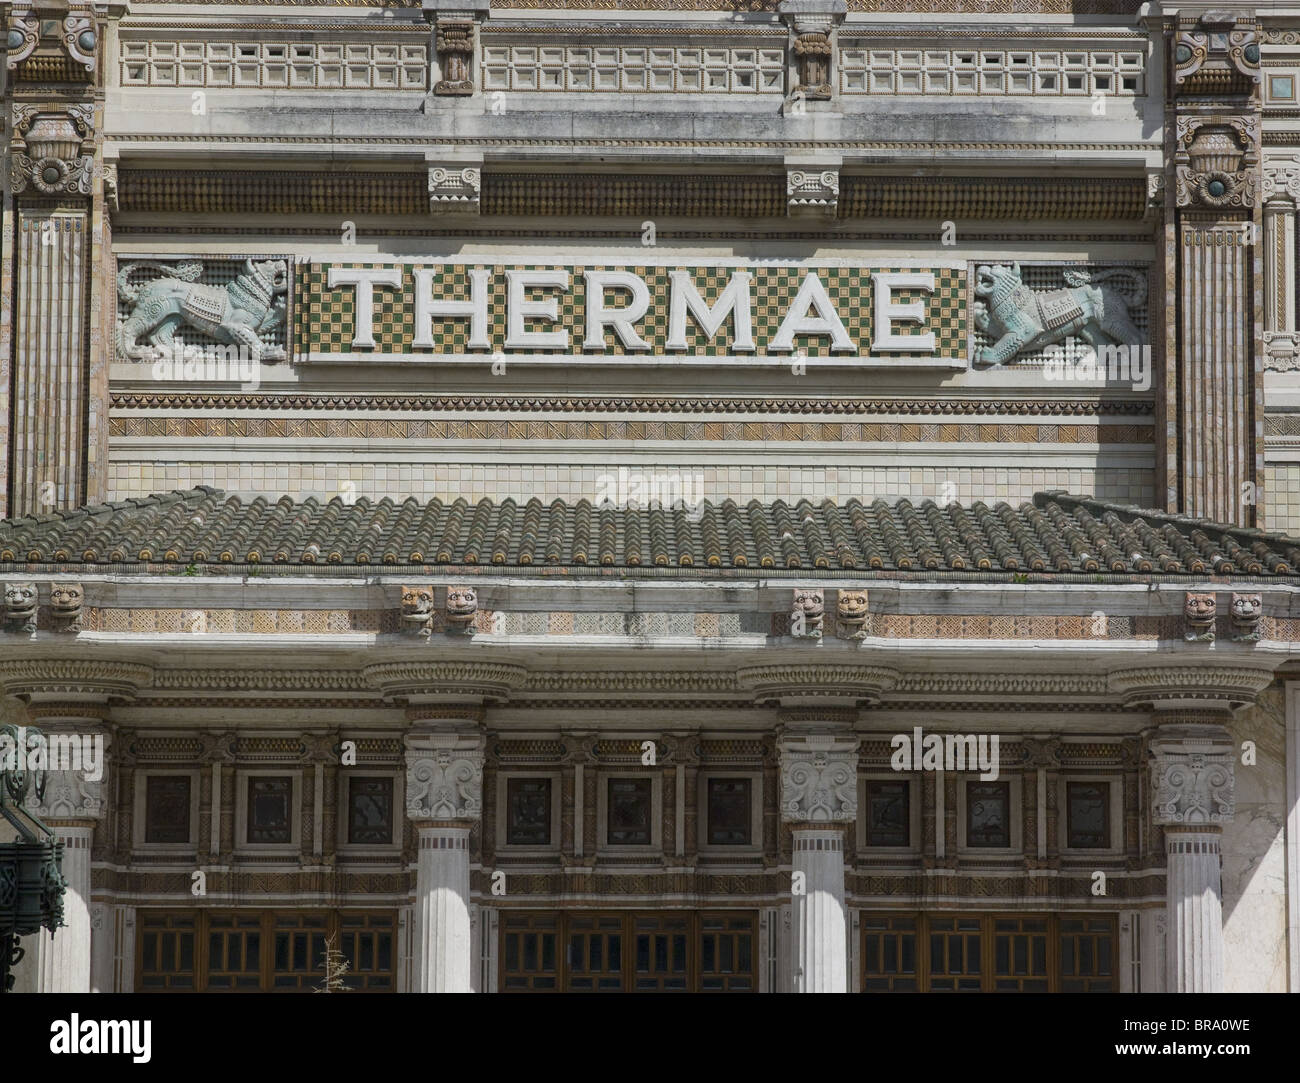 Salsomaggiore, Italy, thermal baths by Art Nouveau architect Ugo Giusti. Begun 1912 opened 1923. Thermae Lettering - Stock Image